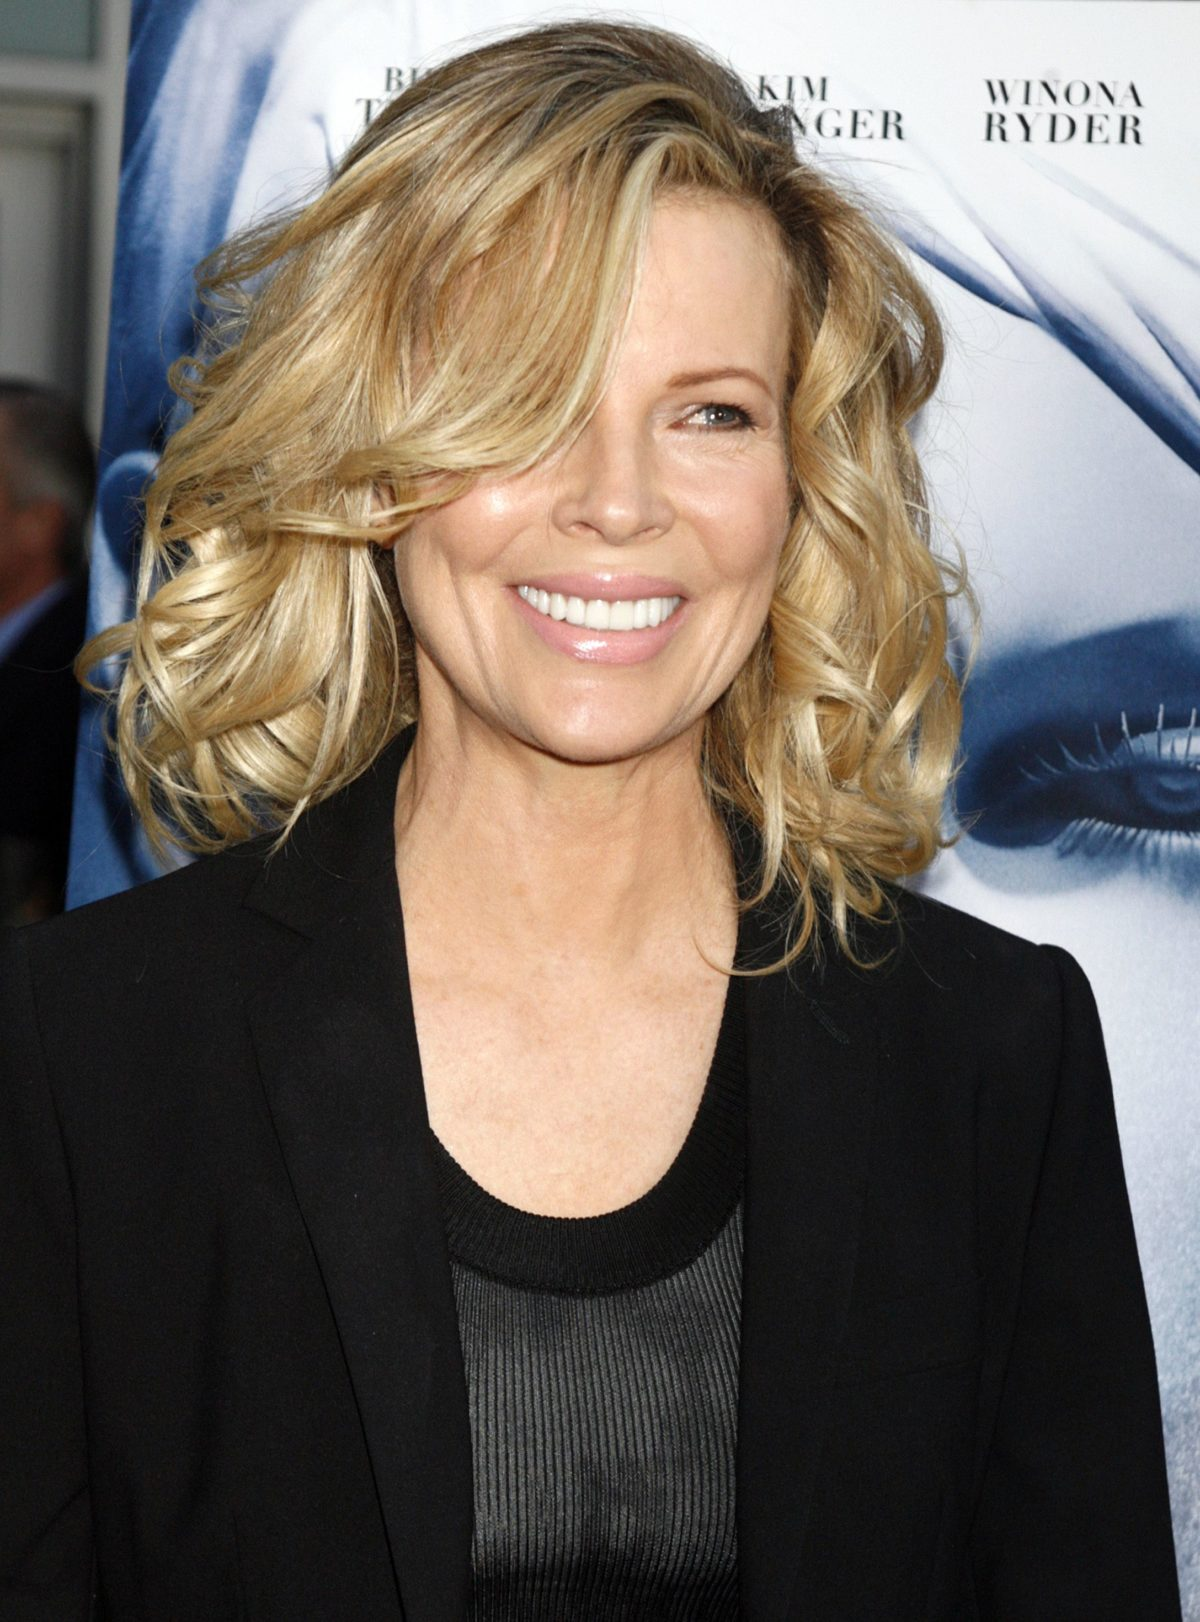 Pictures of Kim Basinger – Pictures Of Celebrities